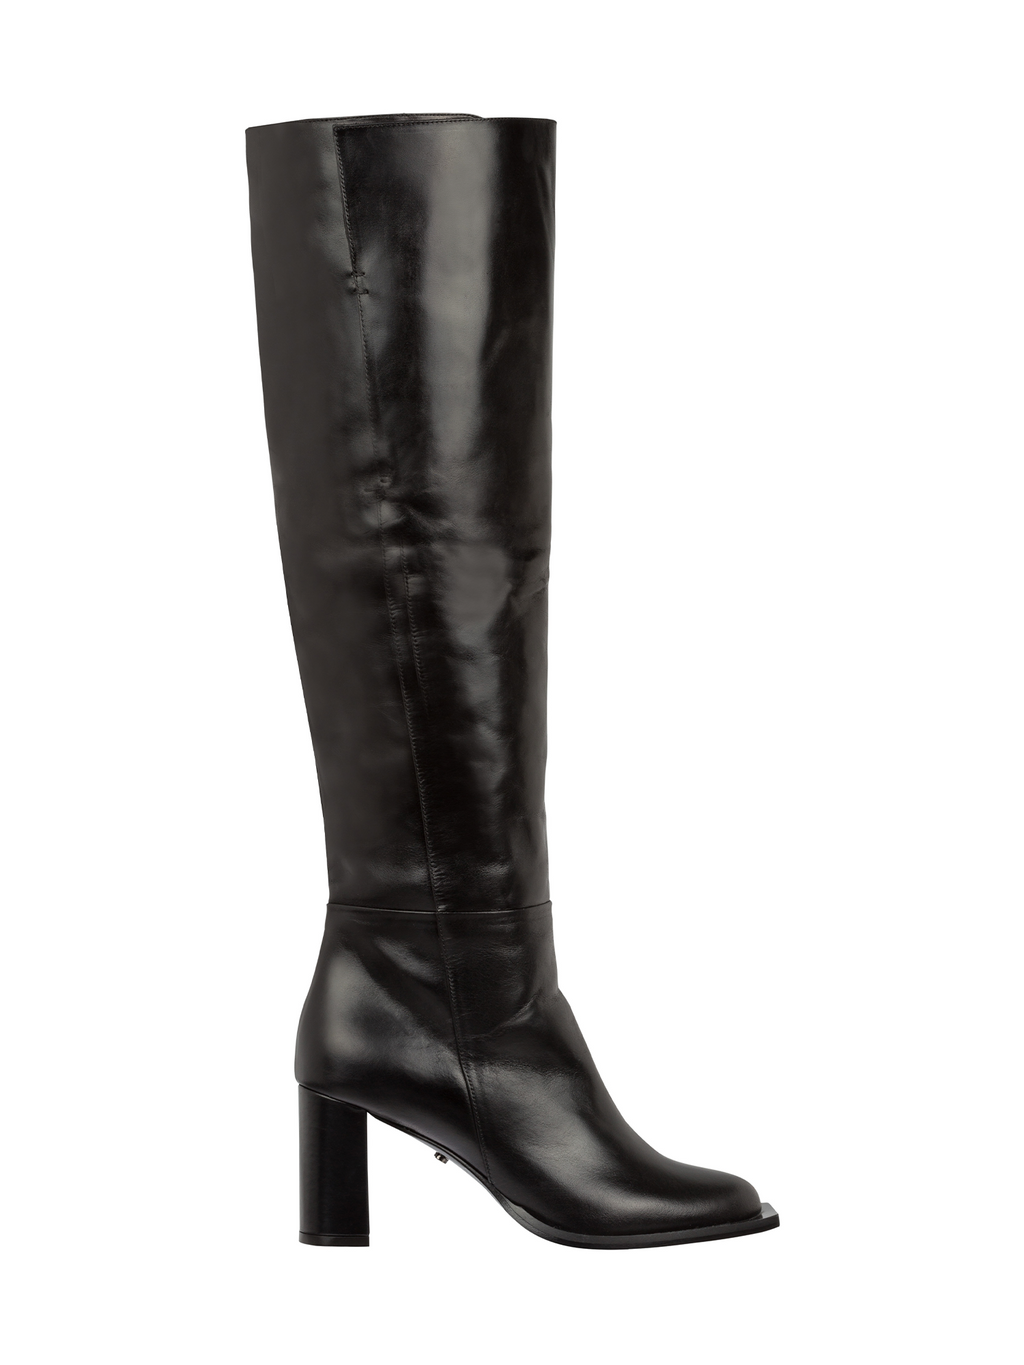 Dorothee Schumacher Sporty Elegance Tall Slouch Boot